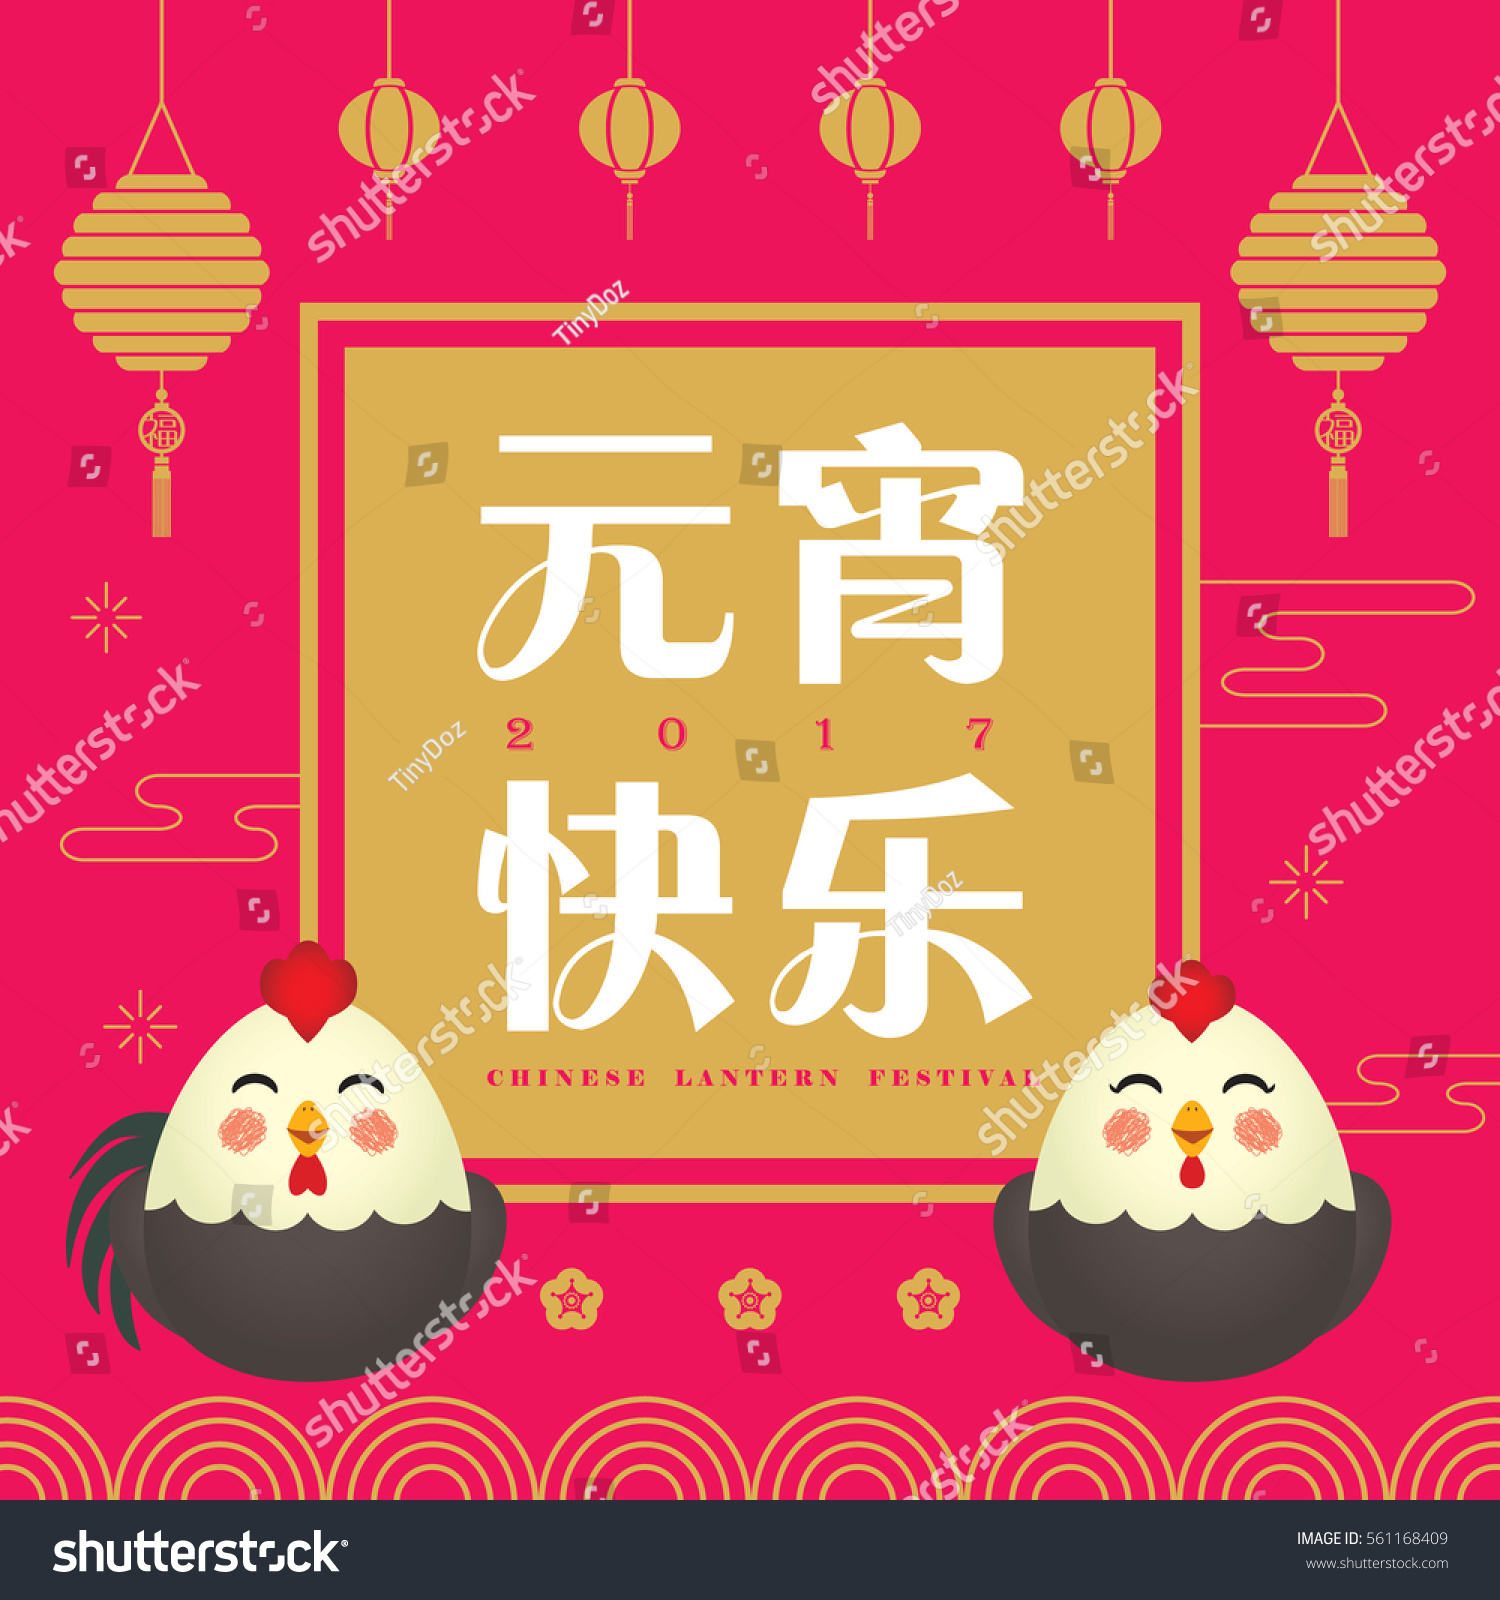 Happy Chinese Lantern Festival Happy Lantern Festival Chinese Valentines Day Stock Vector